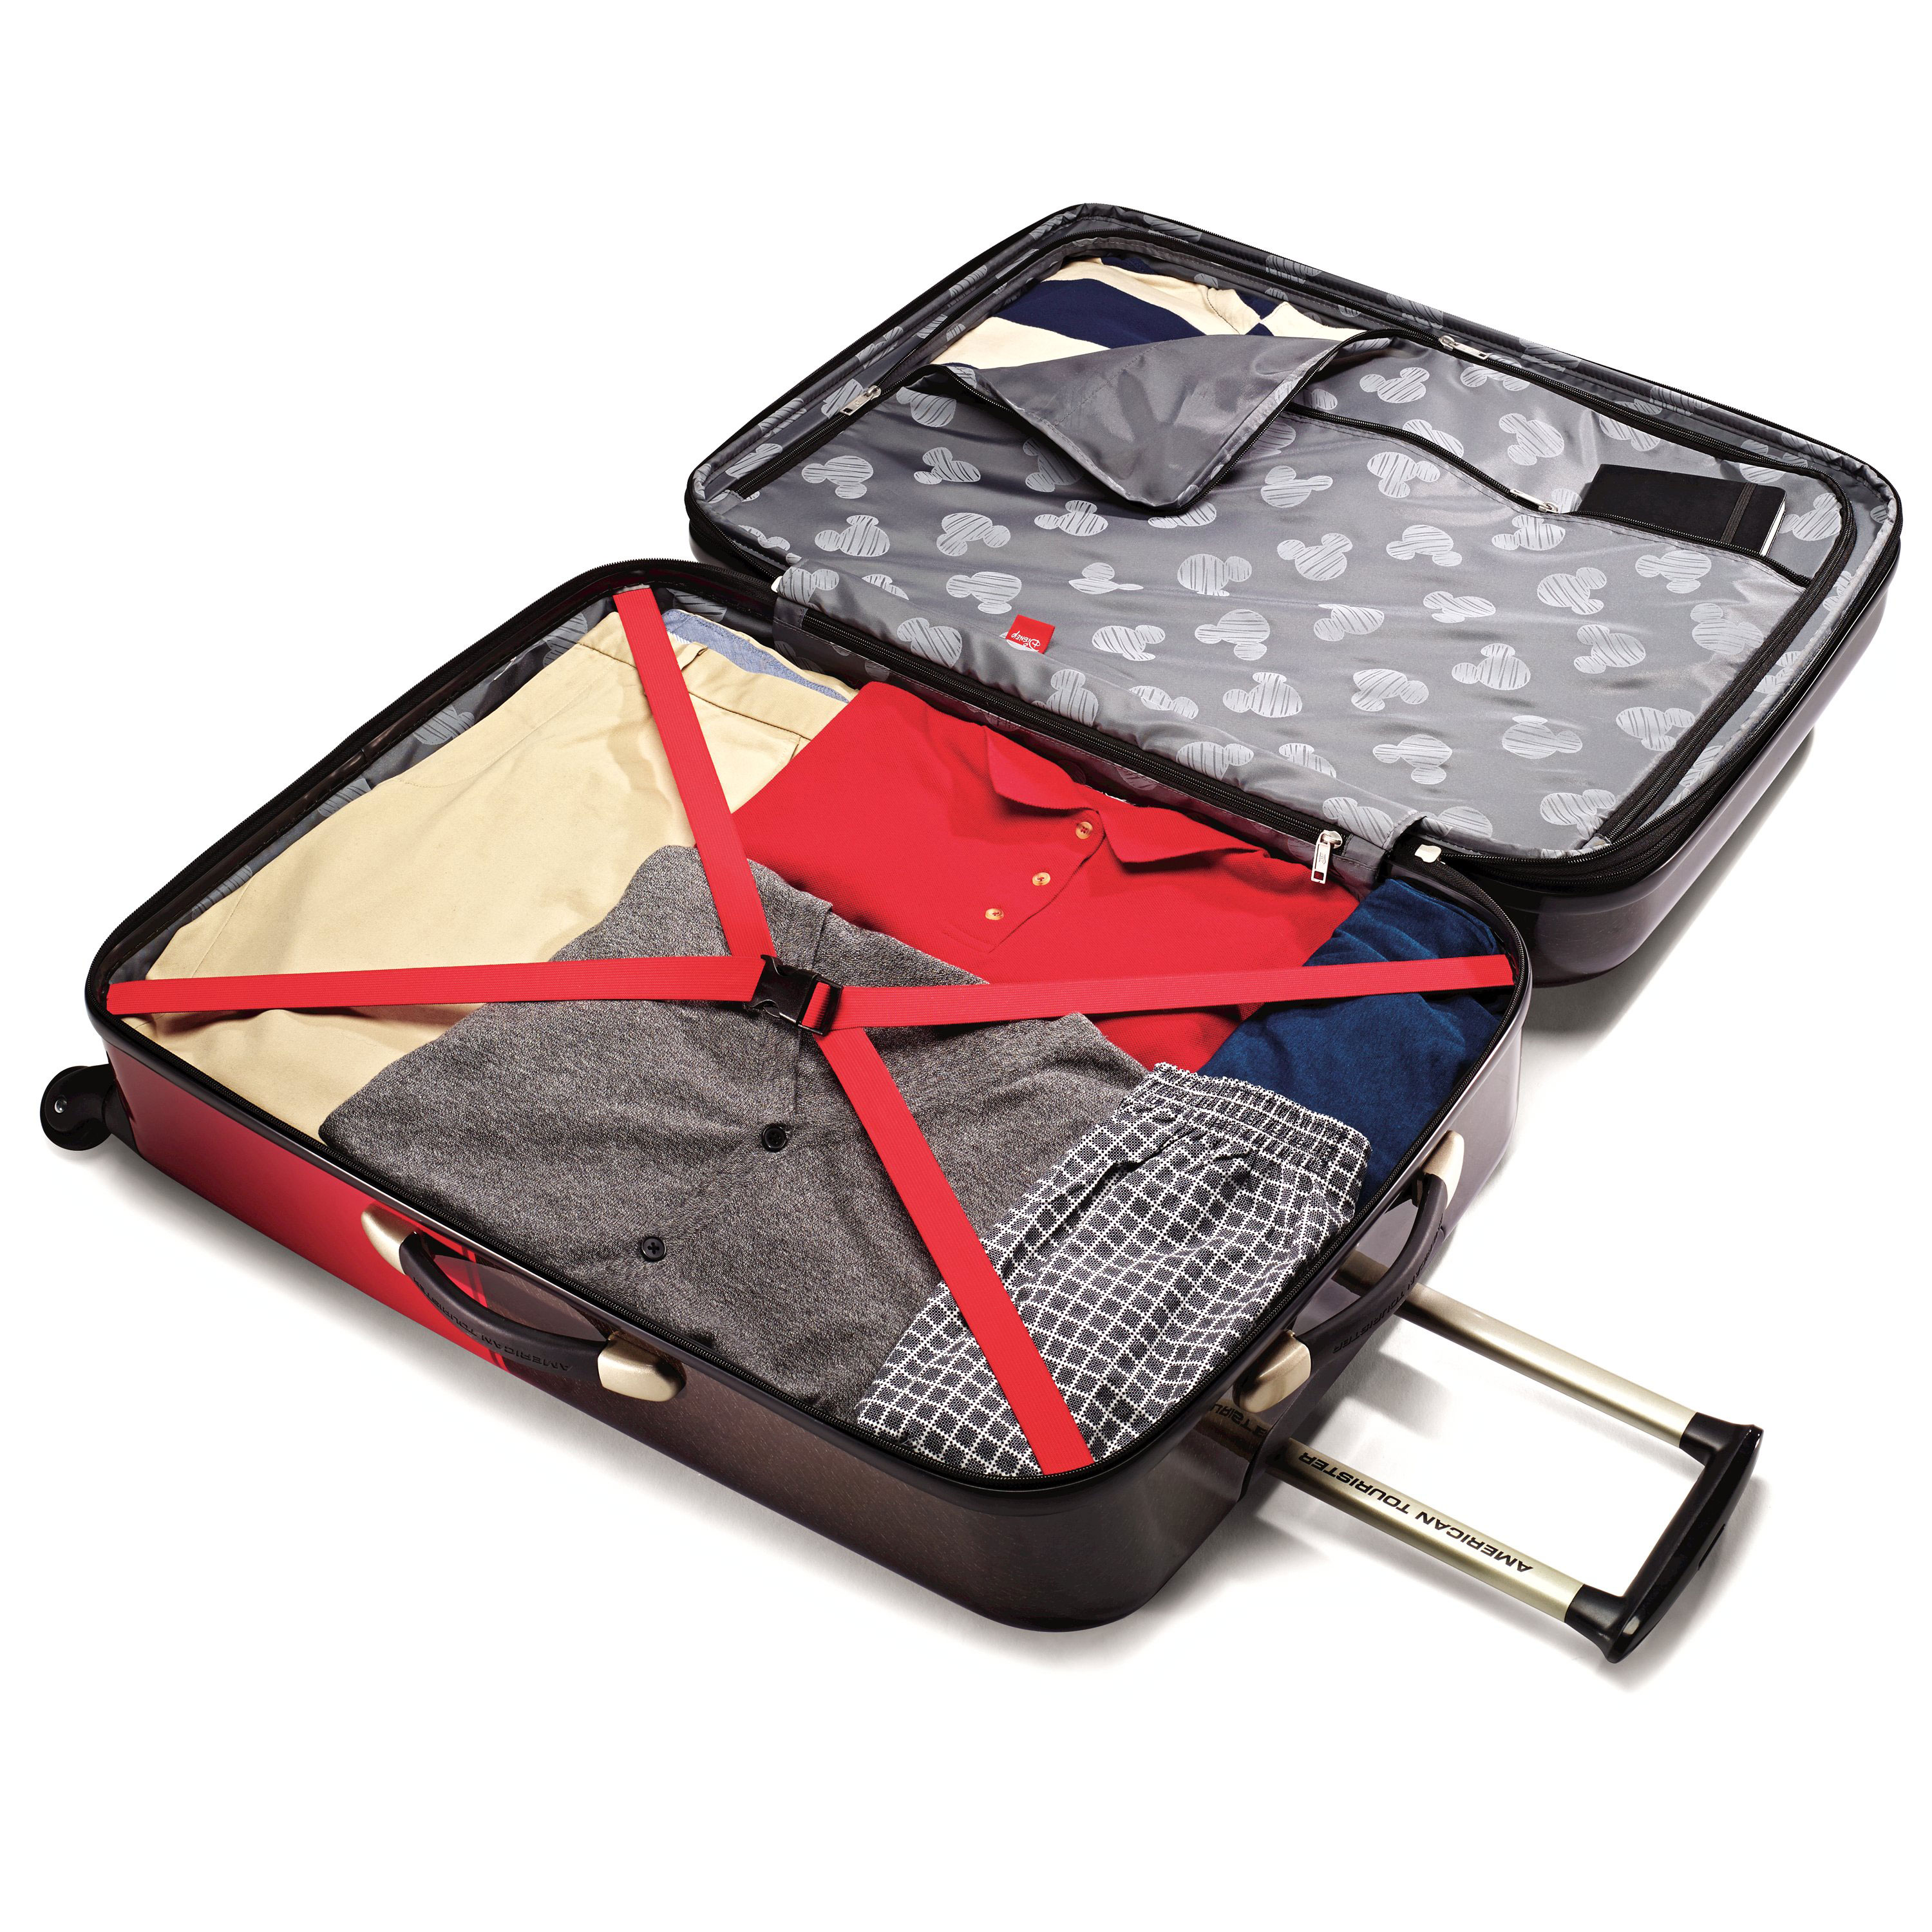 American-Tourister-Disney-Mickey-Mouse-Hardside-Spinner-Luggage thumbnail 8